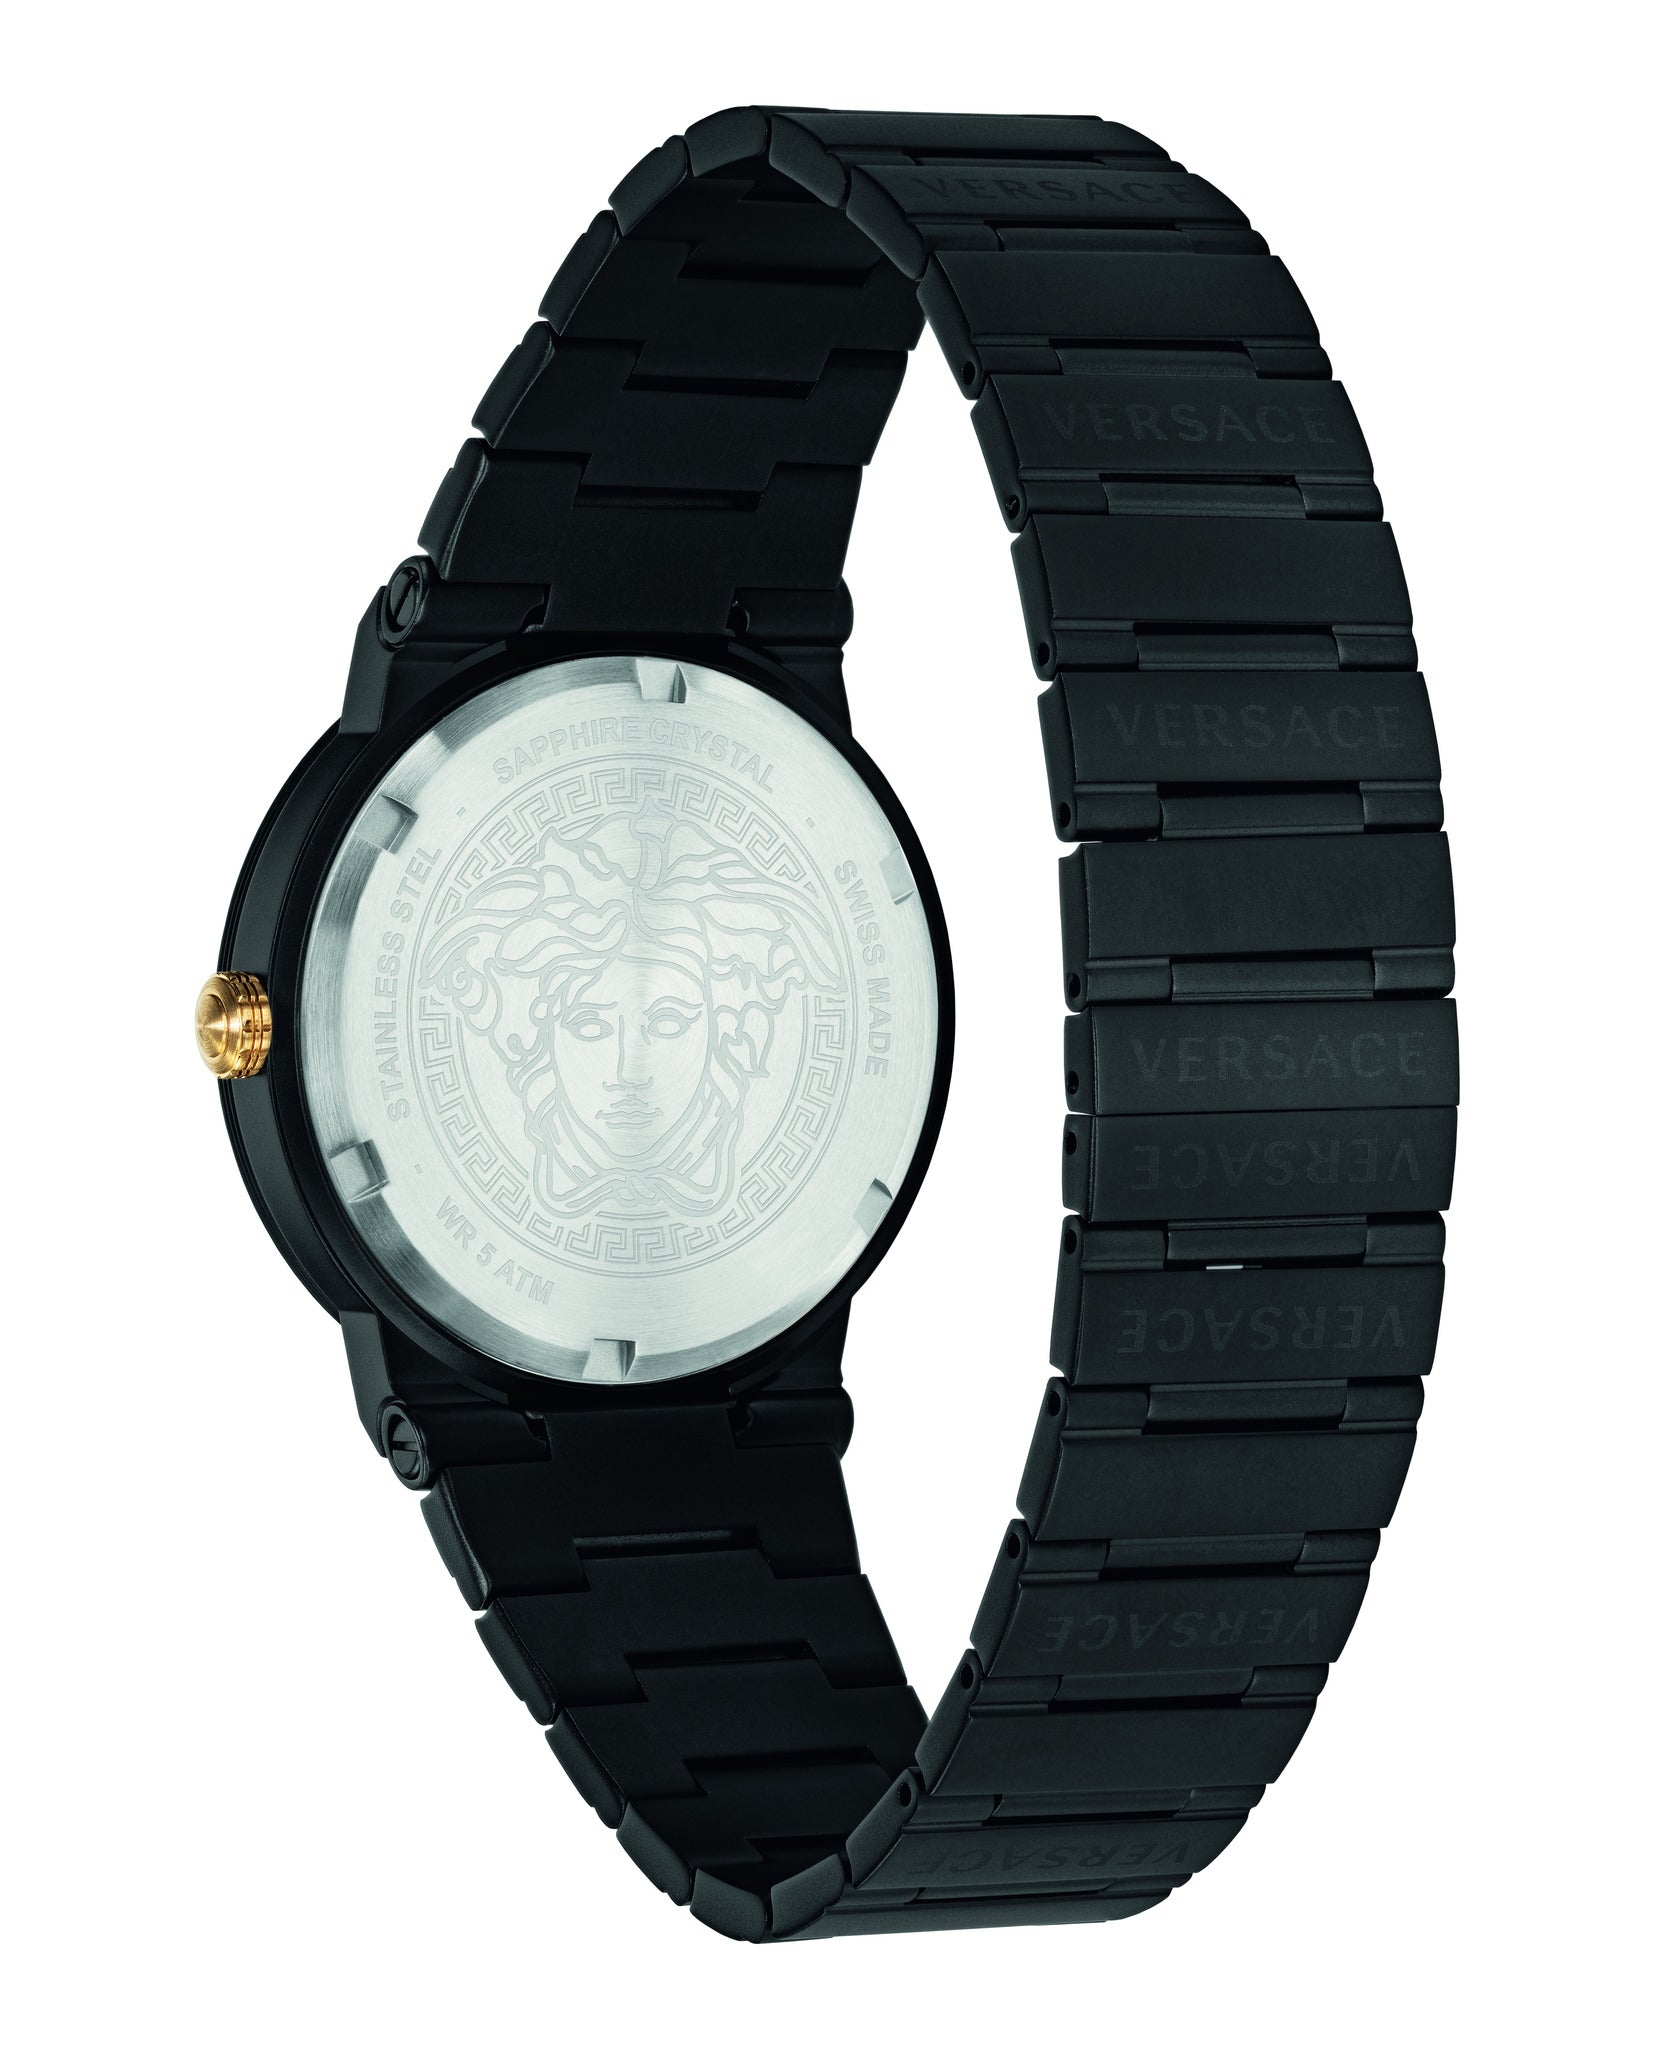 Greca Logo Bracelet Watch